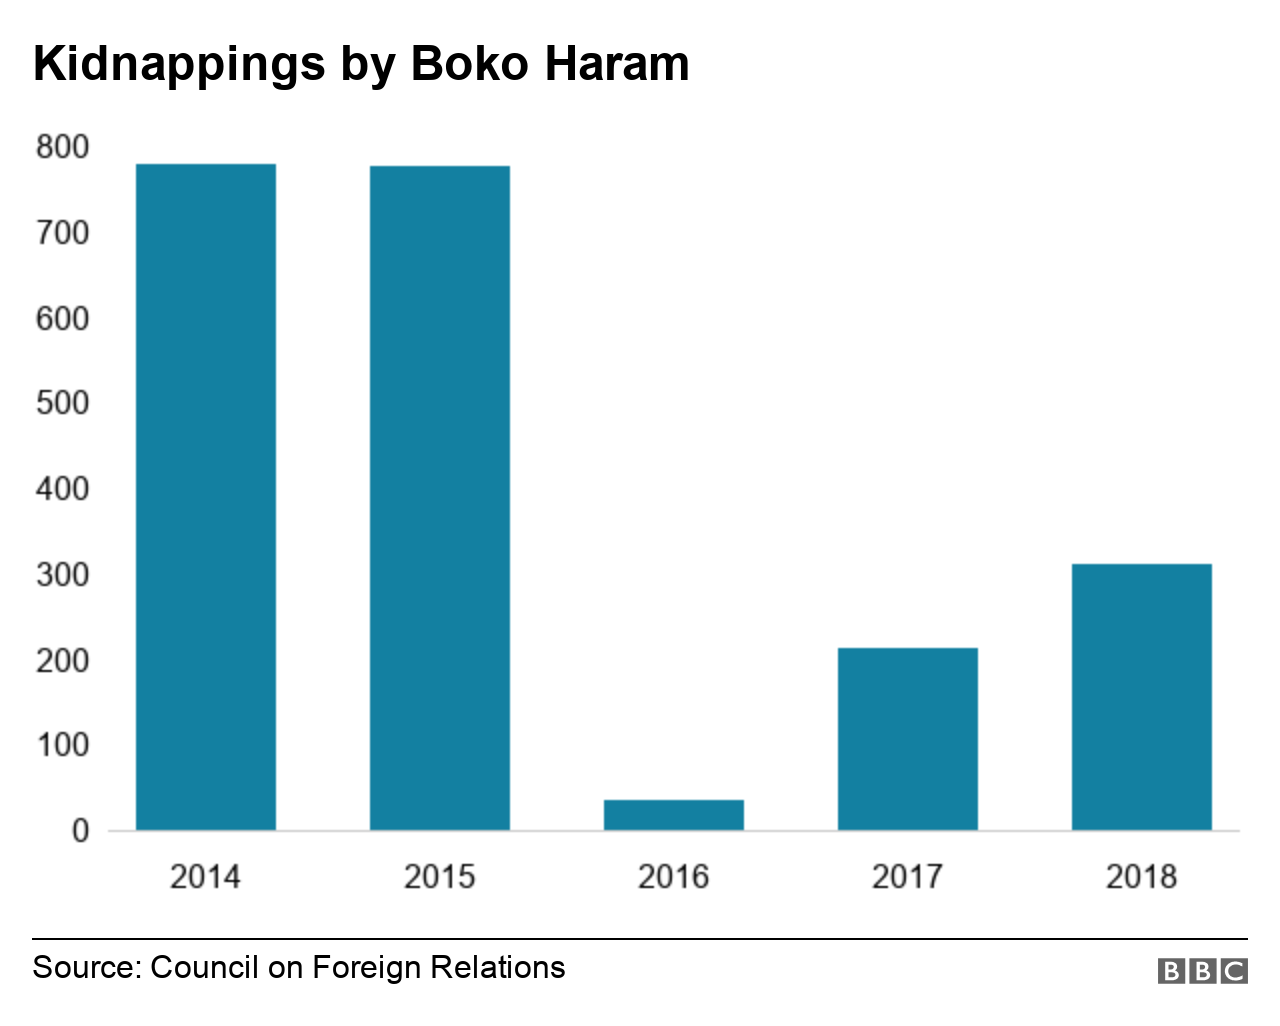 Chart showing the number of kidnappings by Boko Haram